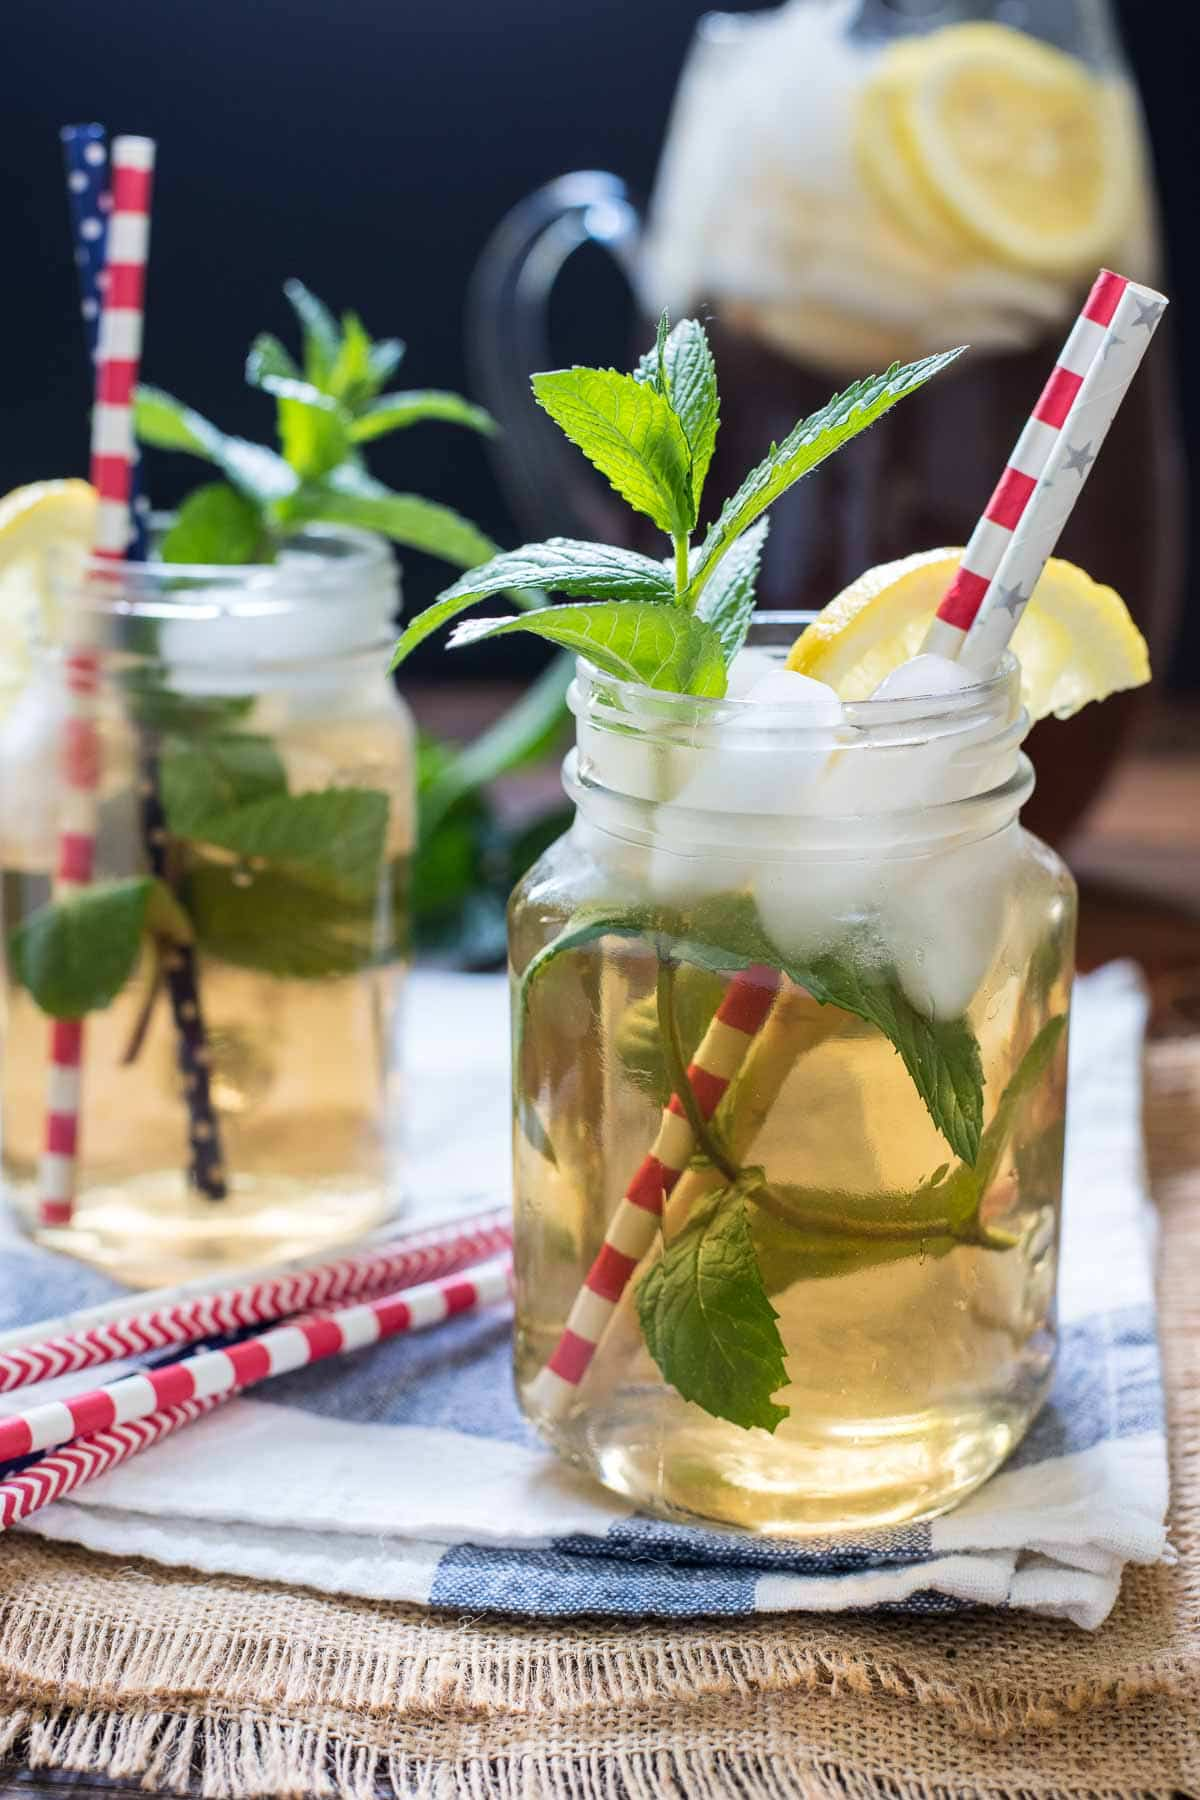 Mint Iced Tea is so refreshing on a hot summer day. Make it on the stove top or in a tea maker with this recipe!